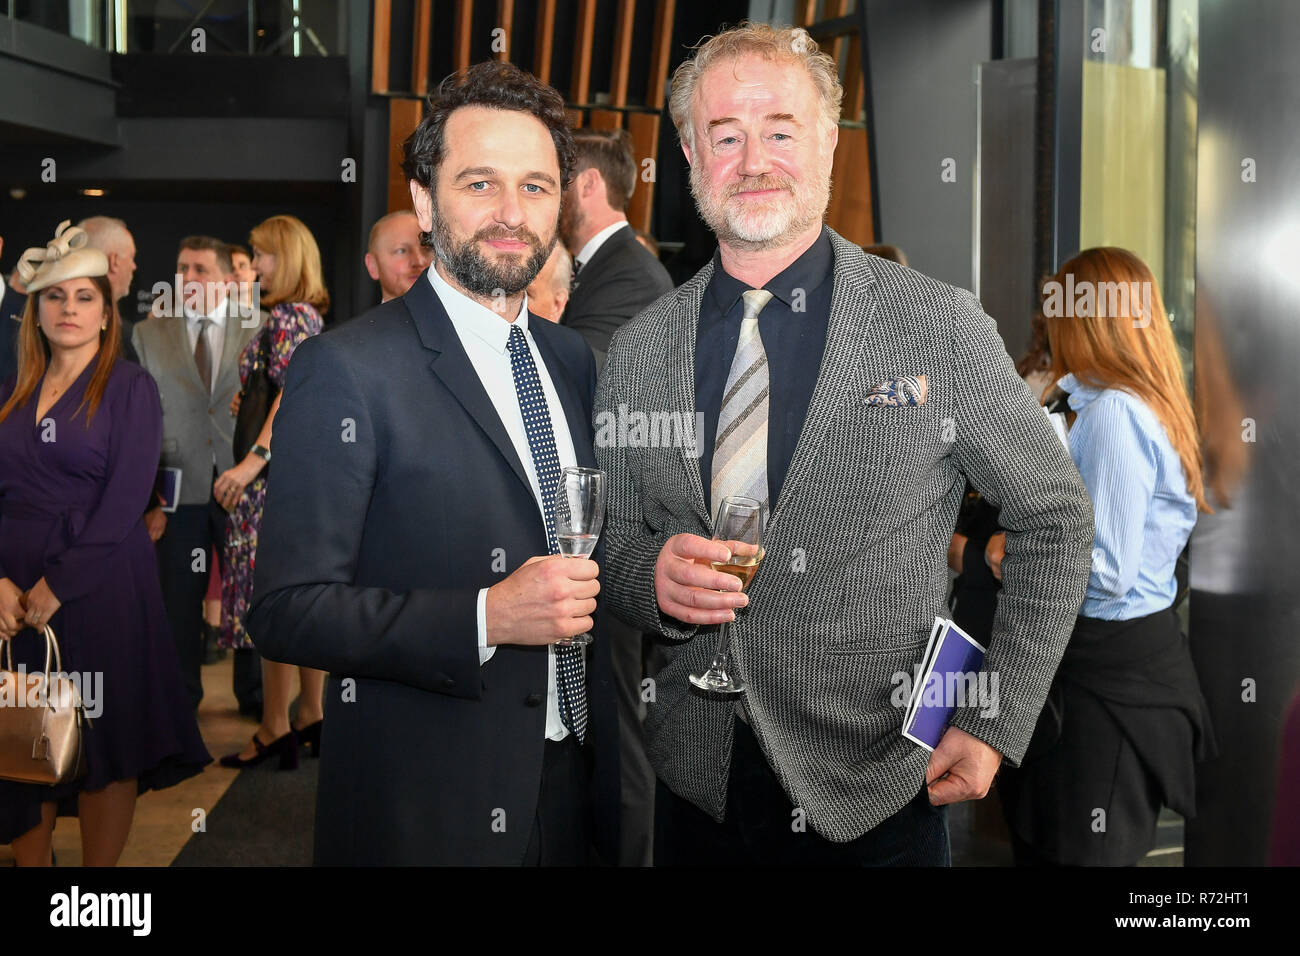 Actors Matthew Rhys (left) and Owen Teale attend a reception at The Royal Welsh College of Music & Drama. - Stock Image